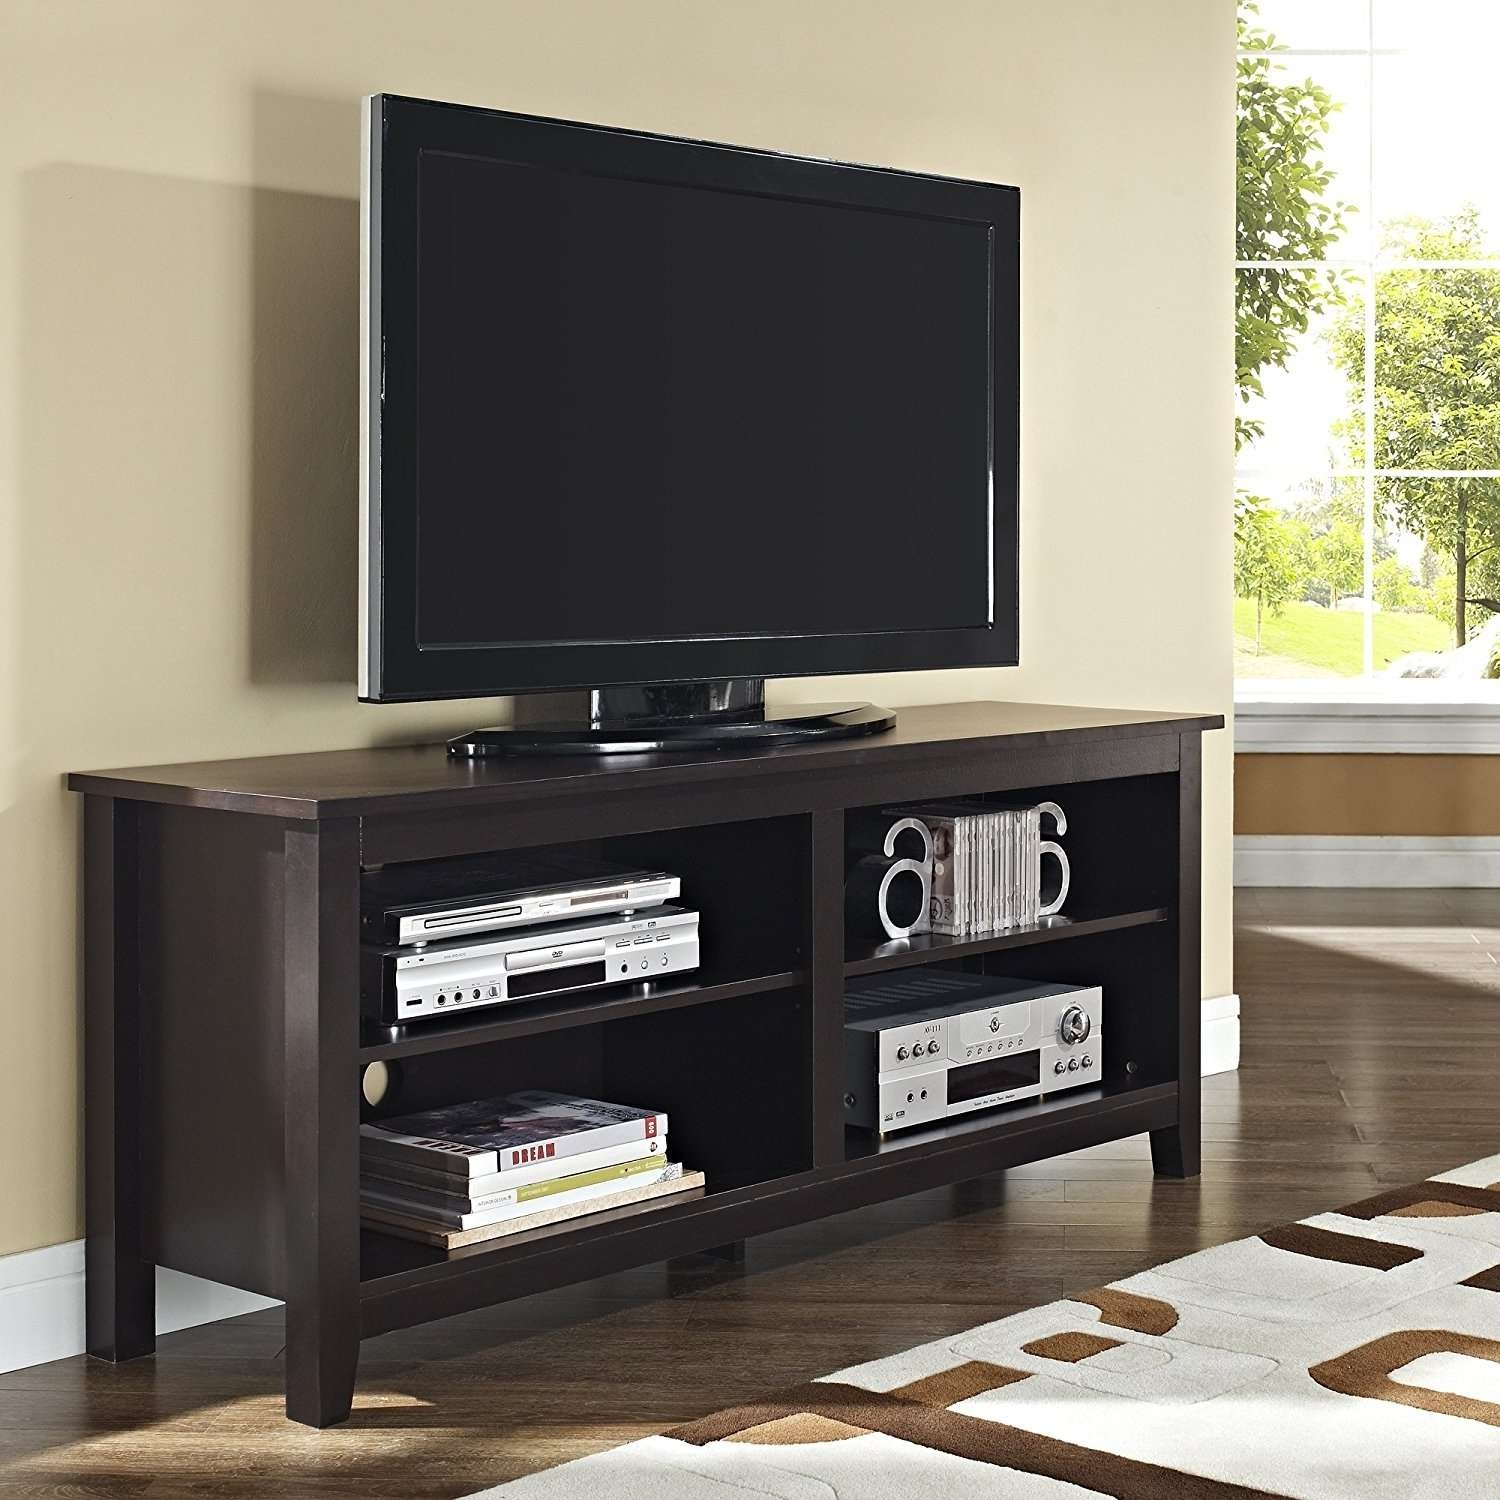 Home Decor : Tv Stand With Fireplace Big Lots Home Style Tips With Big Lots Tv Stands (View 7 of 15)